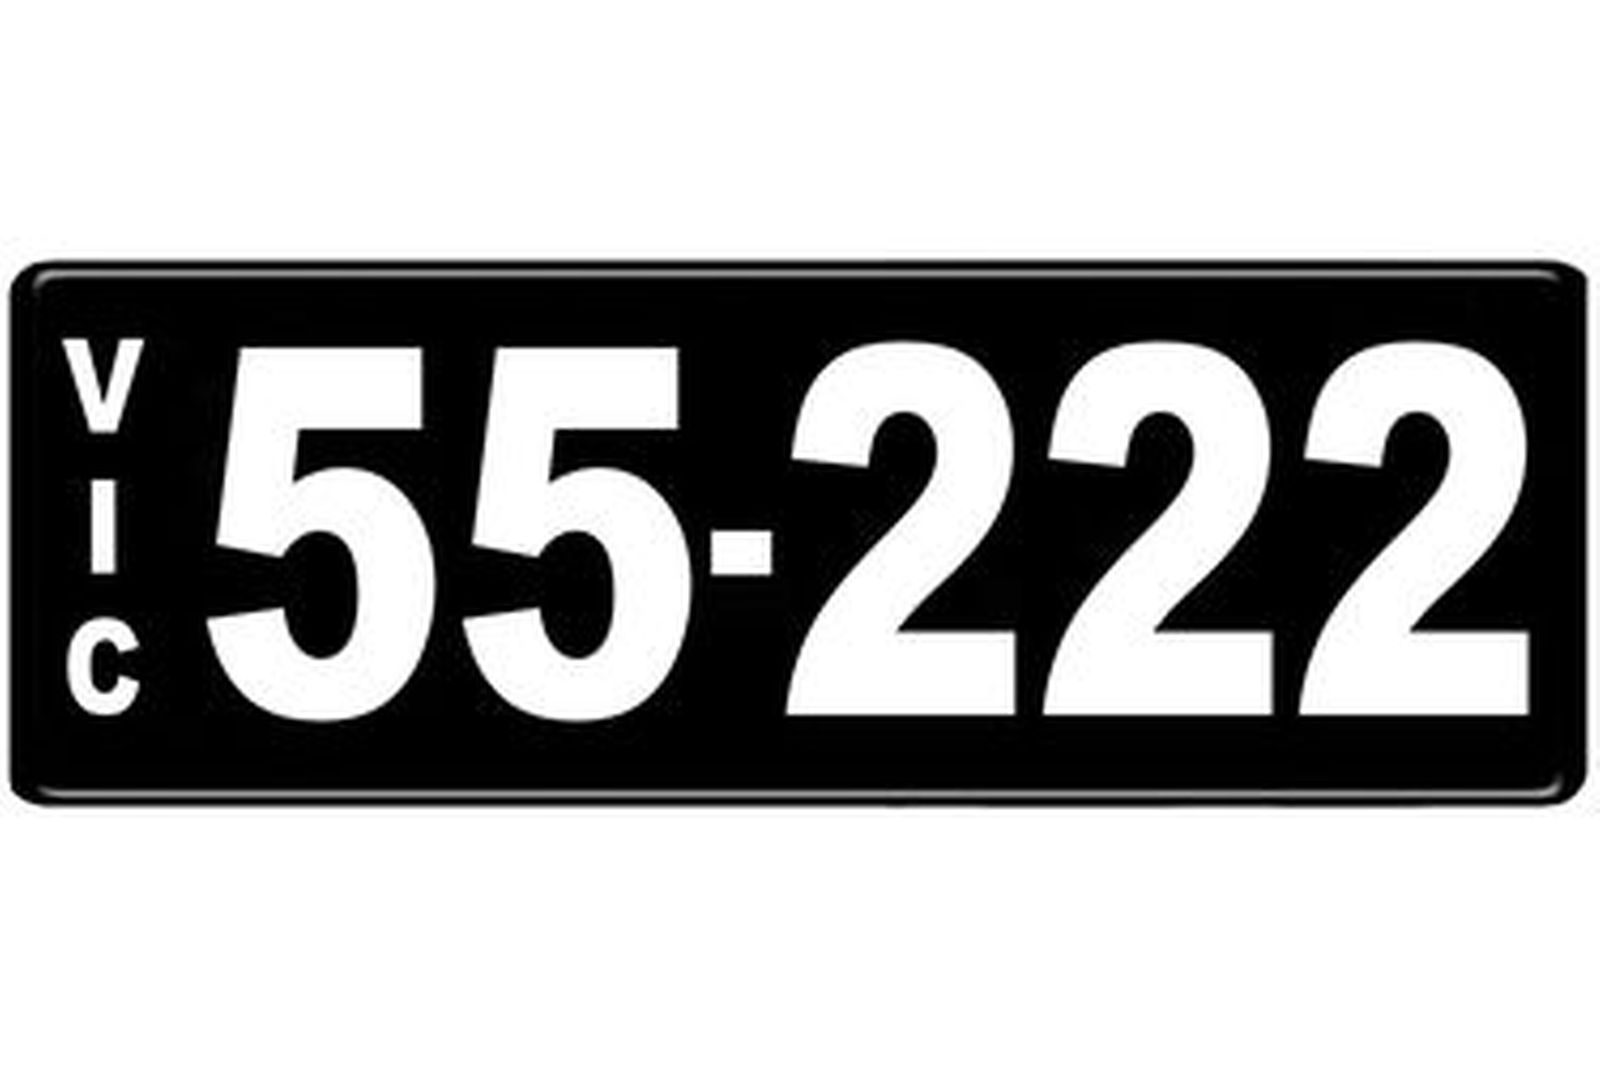 Number Plates - Victorian Numerical Number Plates - 55.222